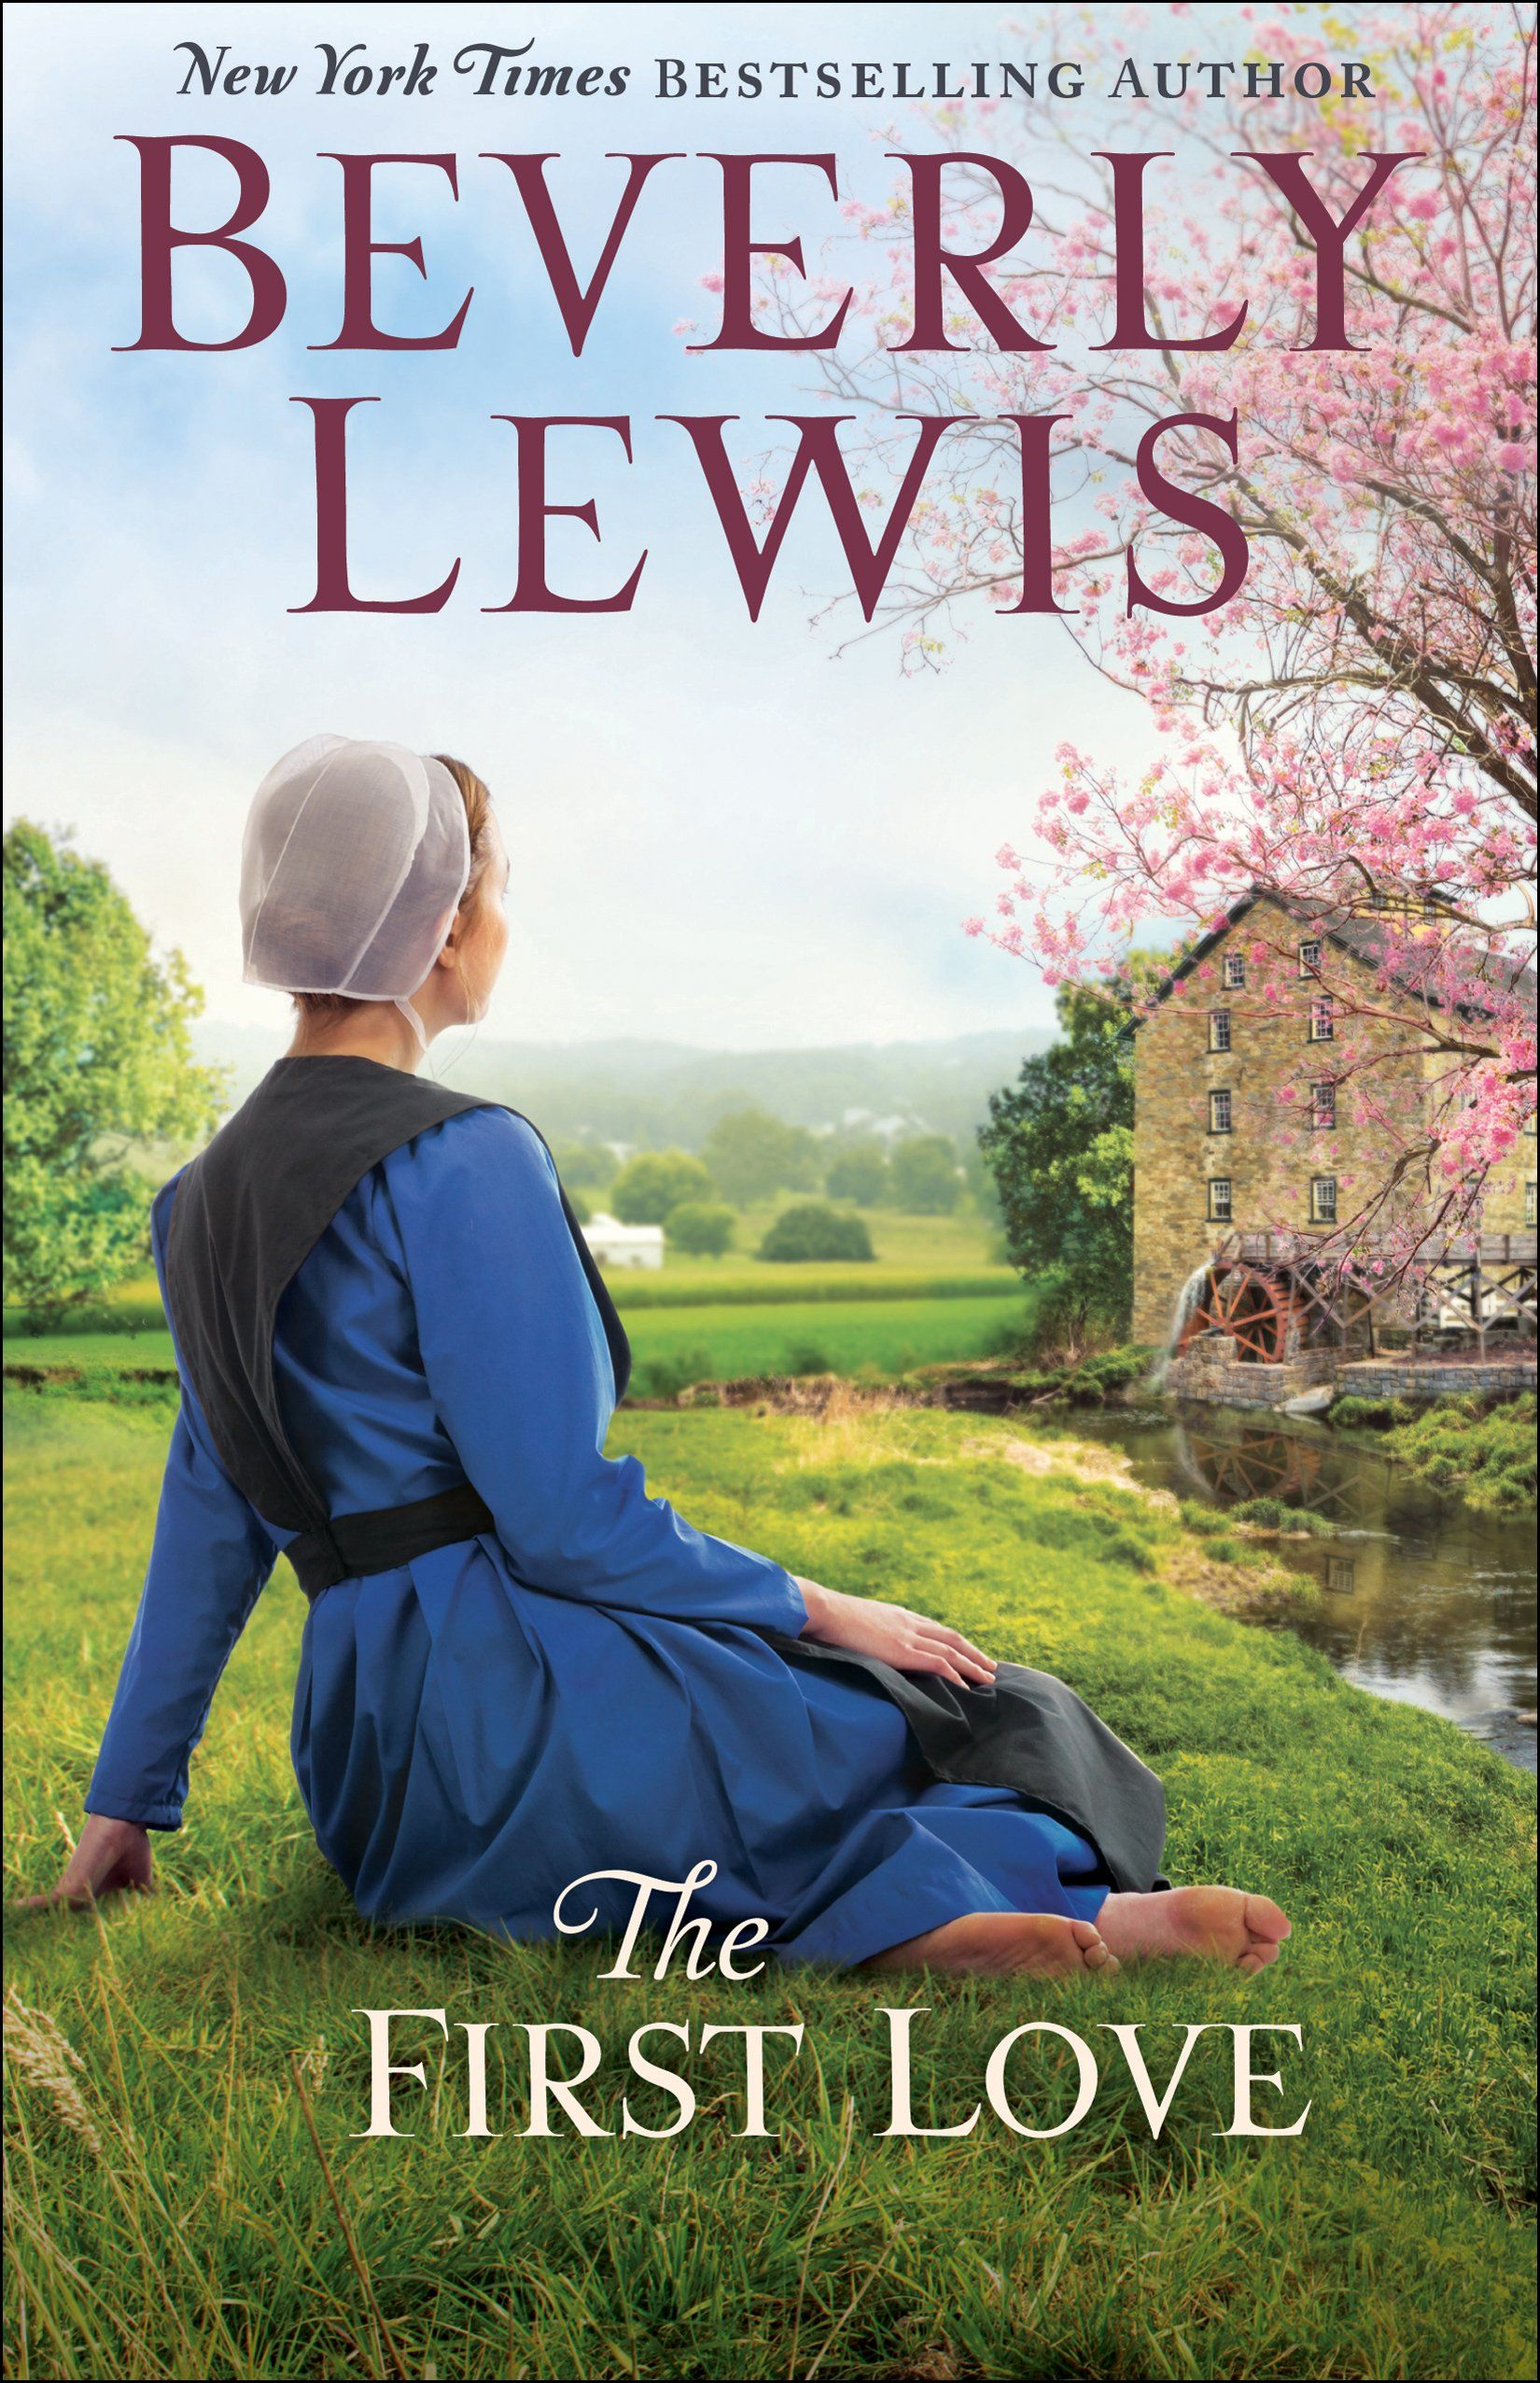 Beverly Lewis - The First Love / #awordfromJoJo #HistoricalRomance  #CleanRomance #Amish #BeverlyLewis | Books | Pinterest | Beverly lewis,  Books and Book ...